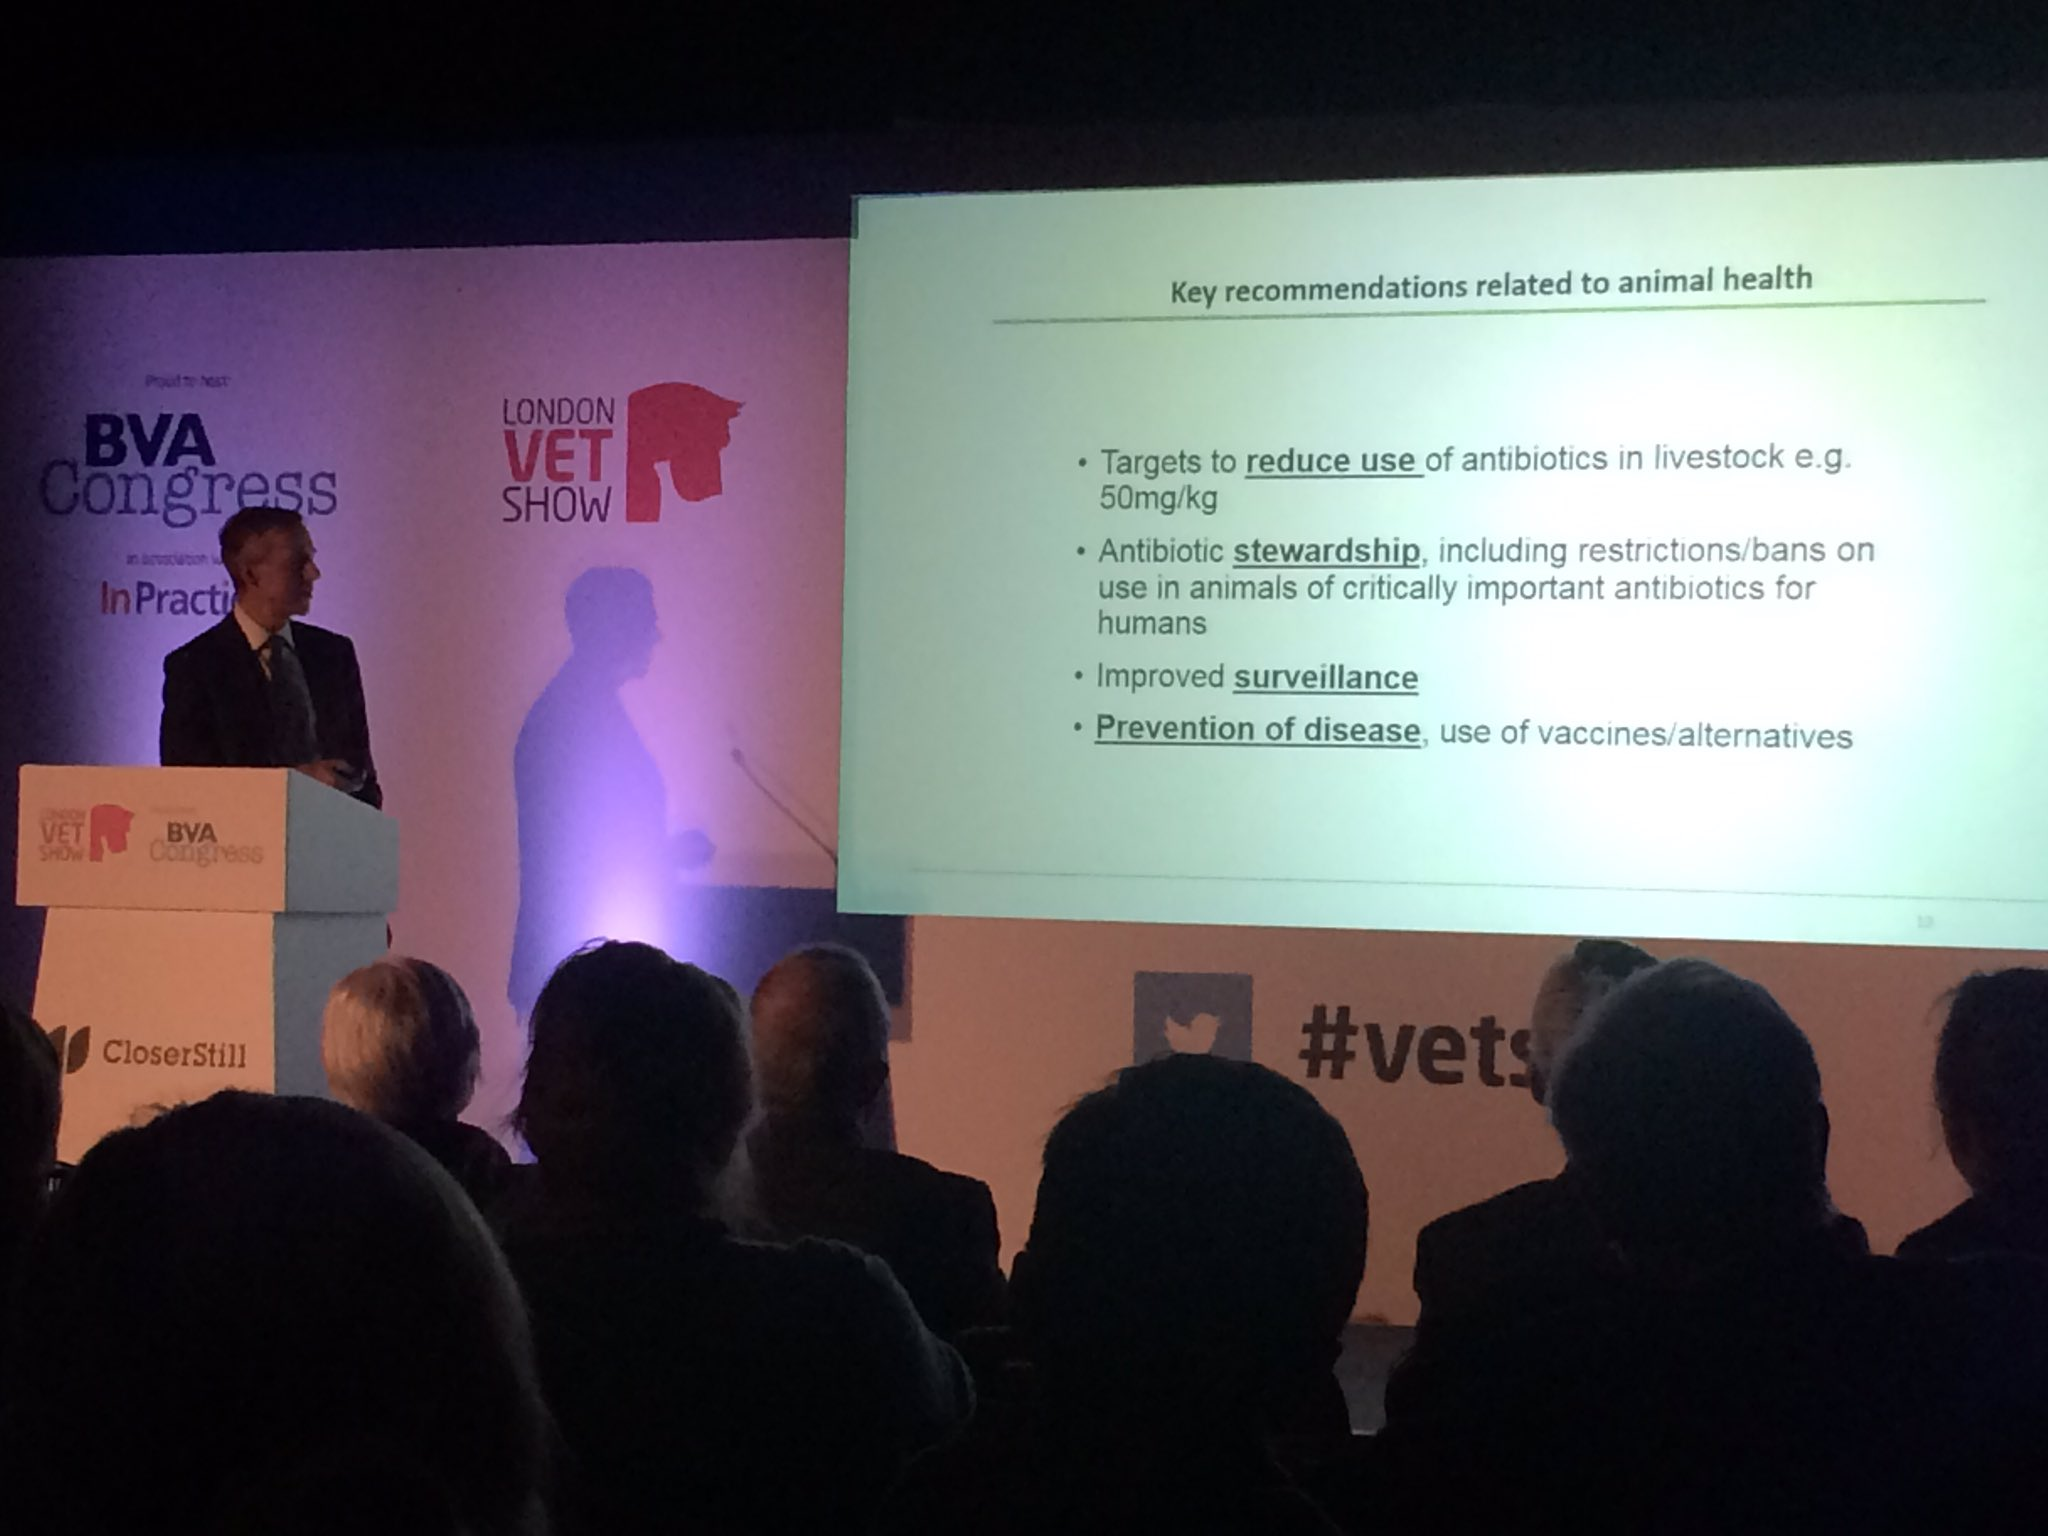 Ahead of #EAAD2016 @ChiefVetUK @DefraGovUK speaks on the O'Neill report & progress being made on #AMR at BVA Congress #vetshow https://t.co/vyZi0Ywbis